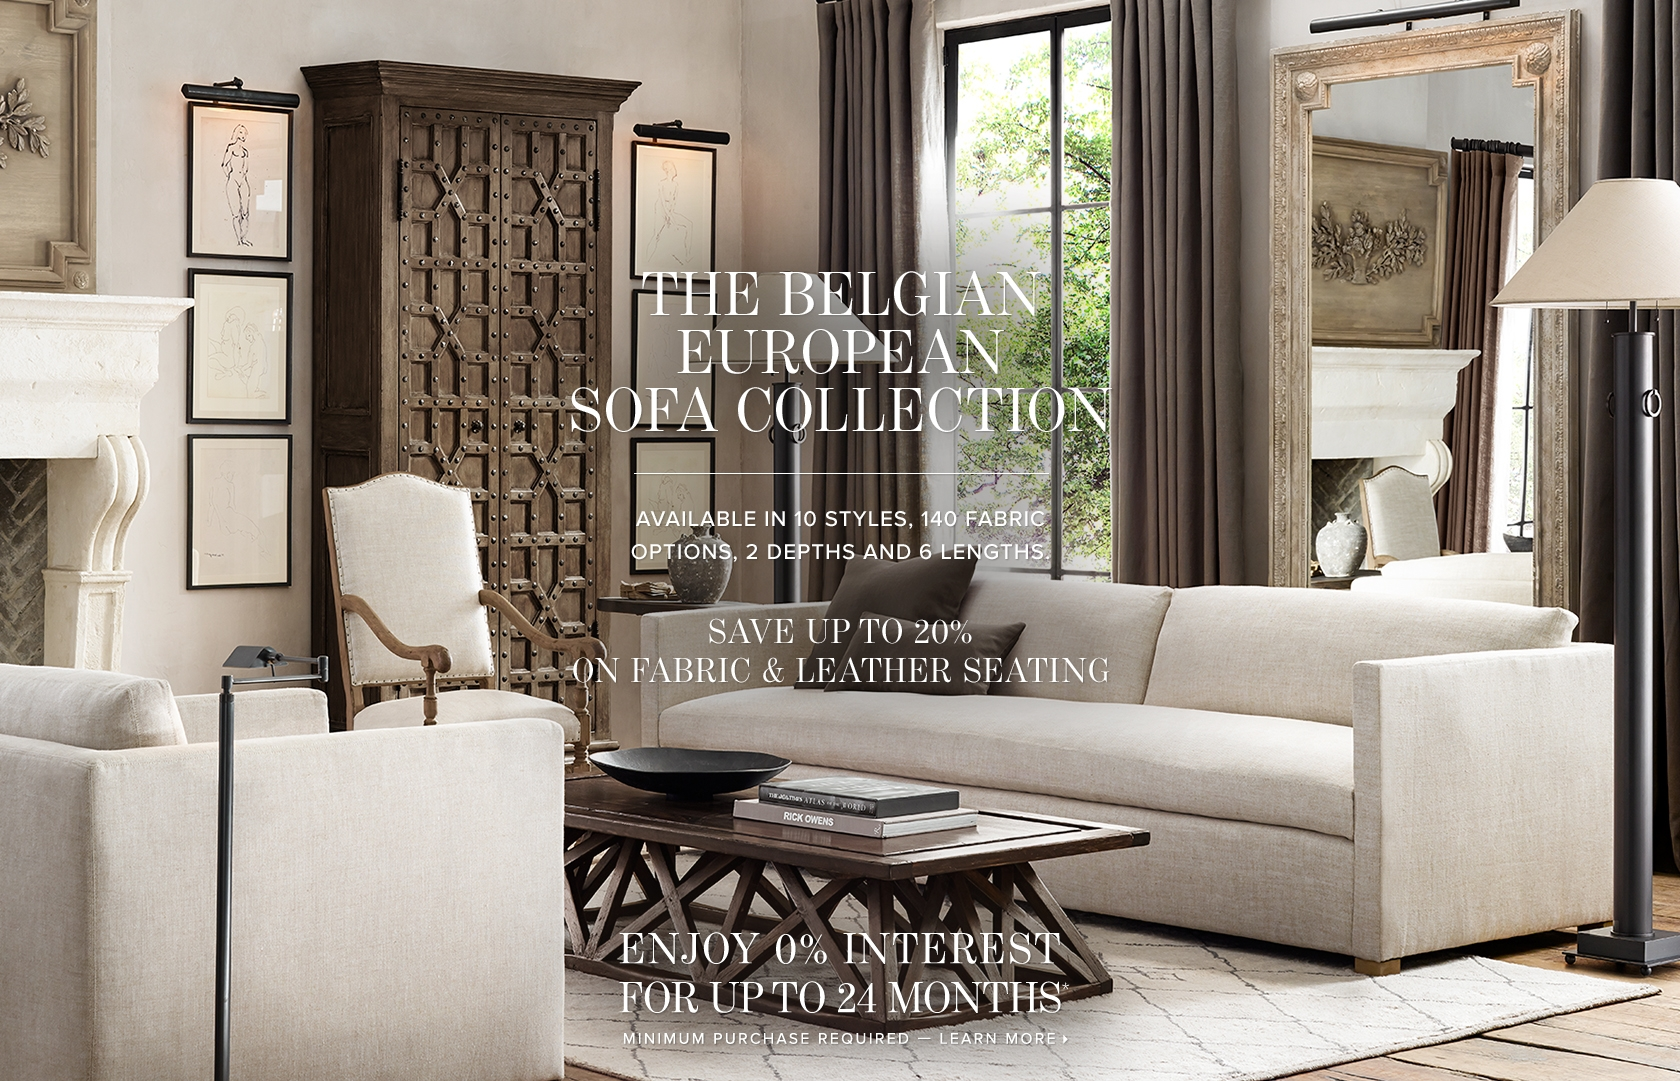 RH is the premier luxury brand in the home furnishings marketplace, offering artisan-crafted furniture, lighting and decor for both indoor and outdoor living.